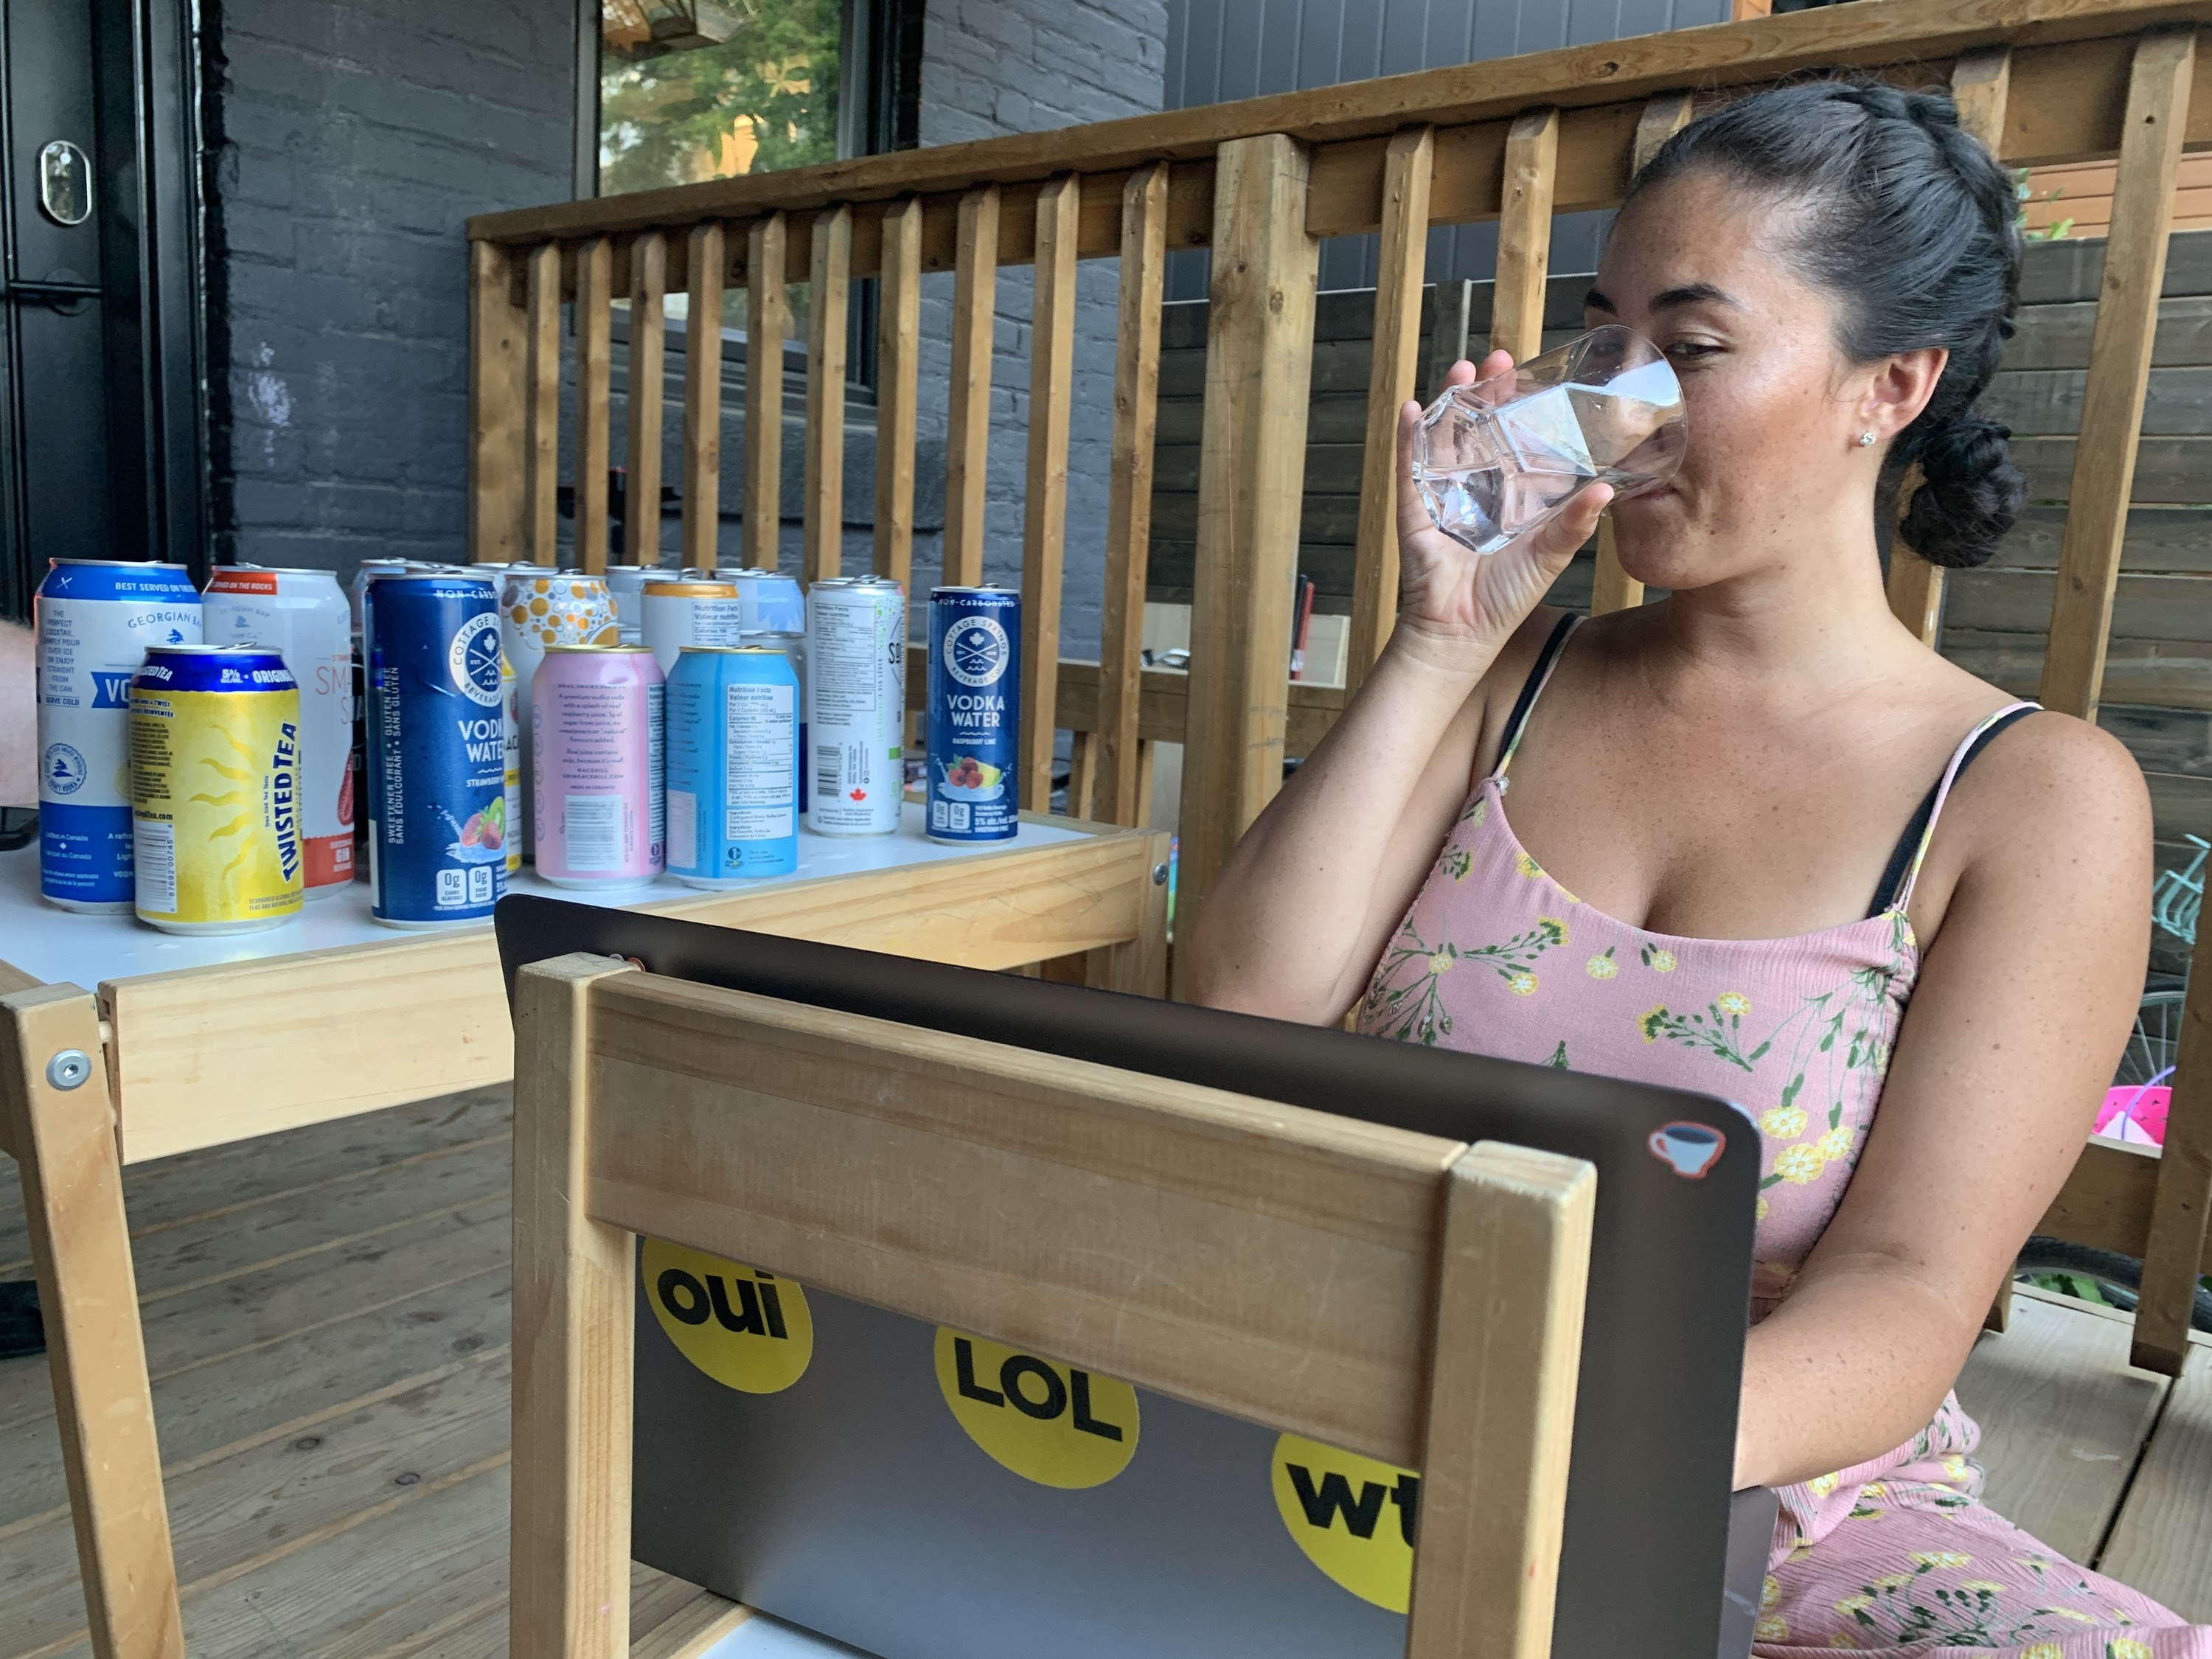 A photo of Liza sitting on a deck in front of her computer sipping a drink while cans of other drinks rest beside her on a table.